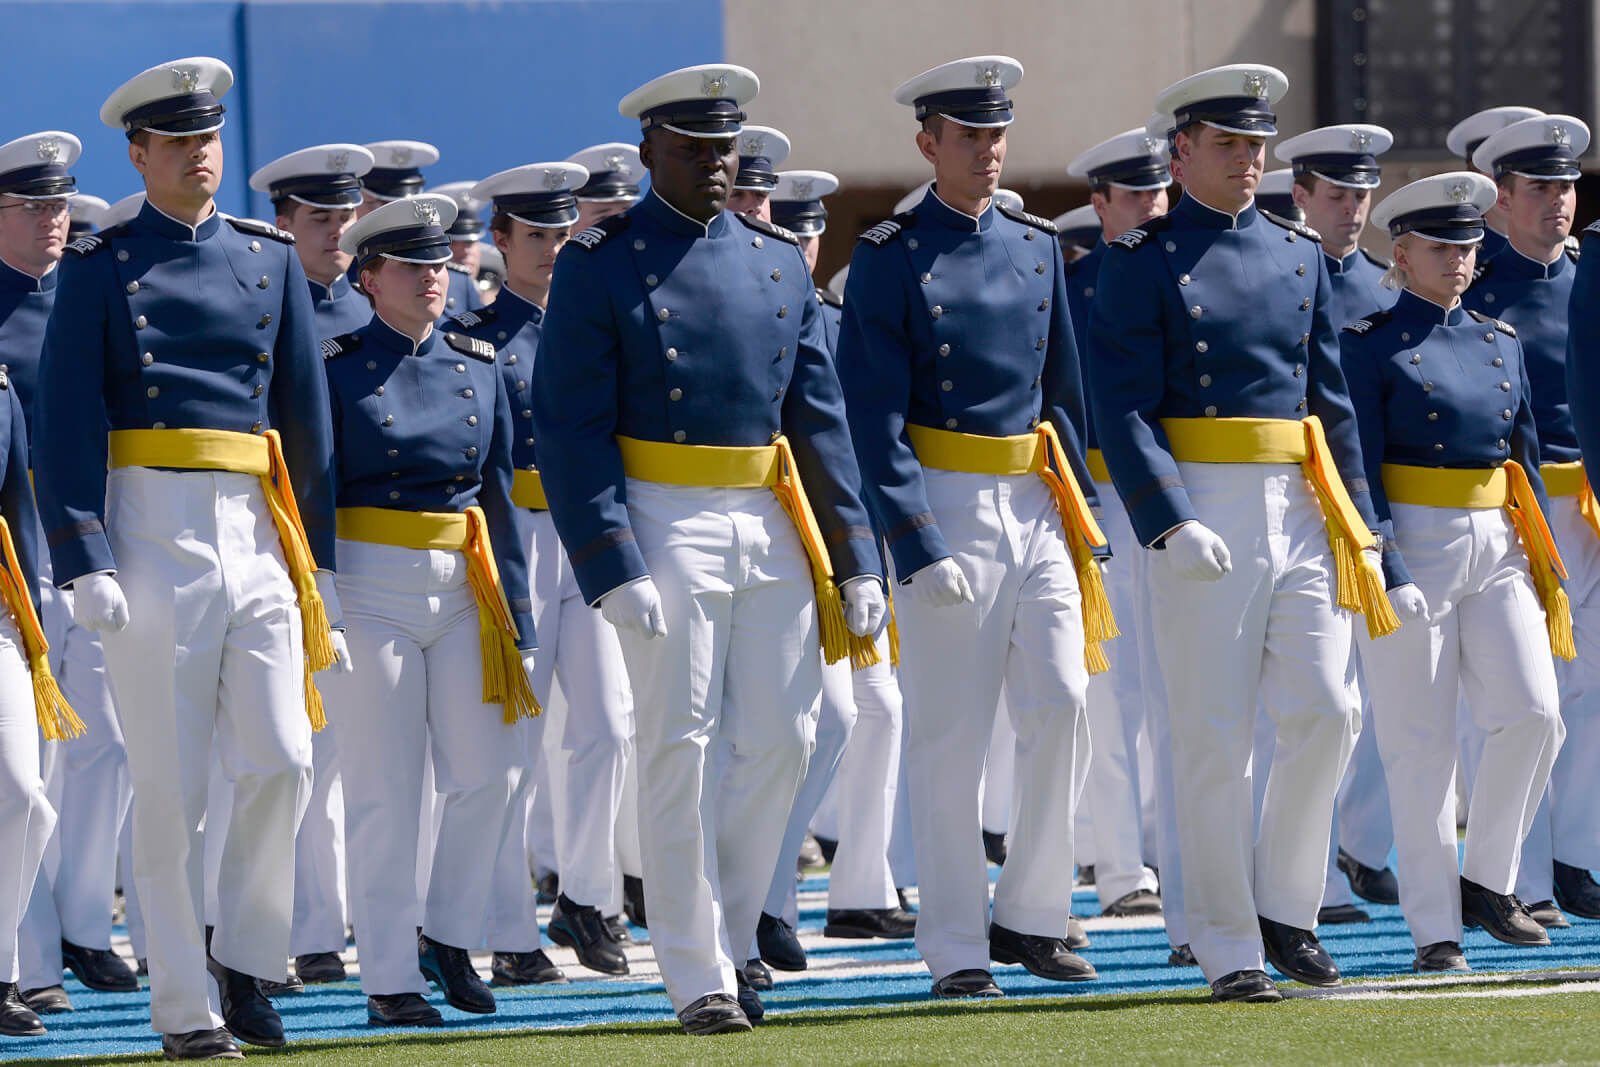 The U.S. Air Force Academy Class of 2014 marches into Falcon Stadium during commencement exercises in Colorado Springs, Colo. May 28, 2014.